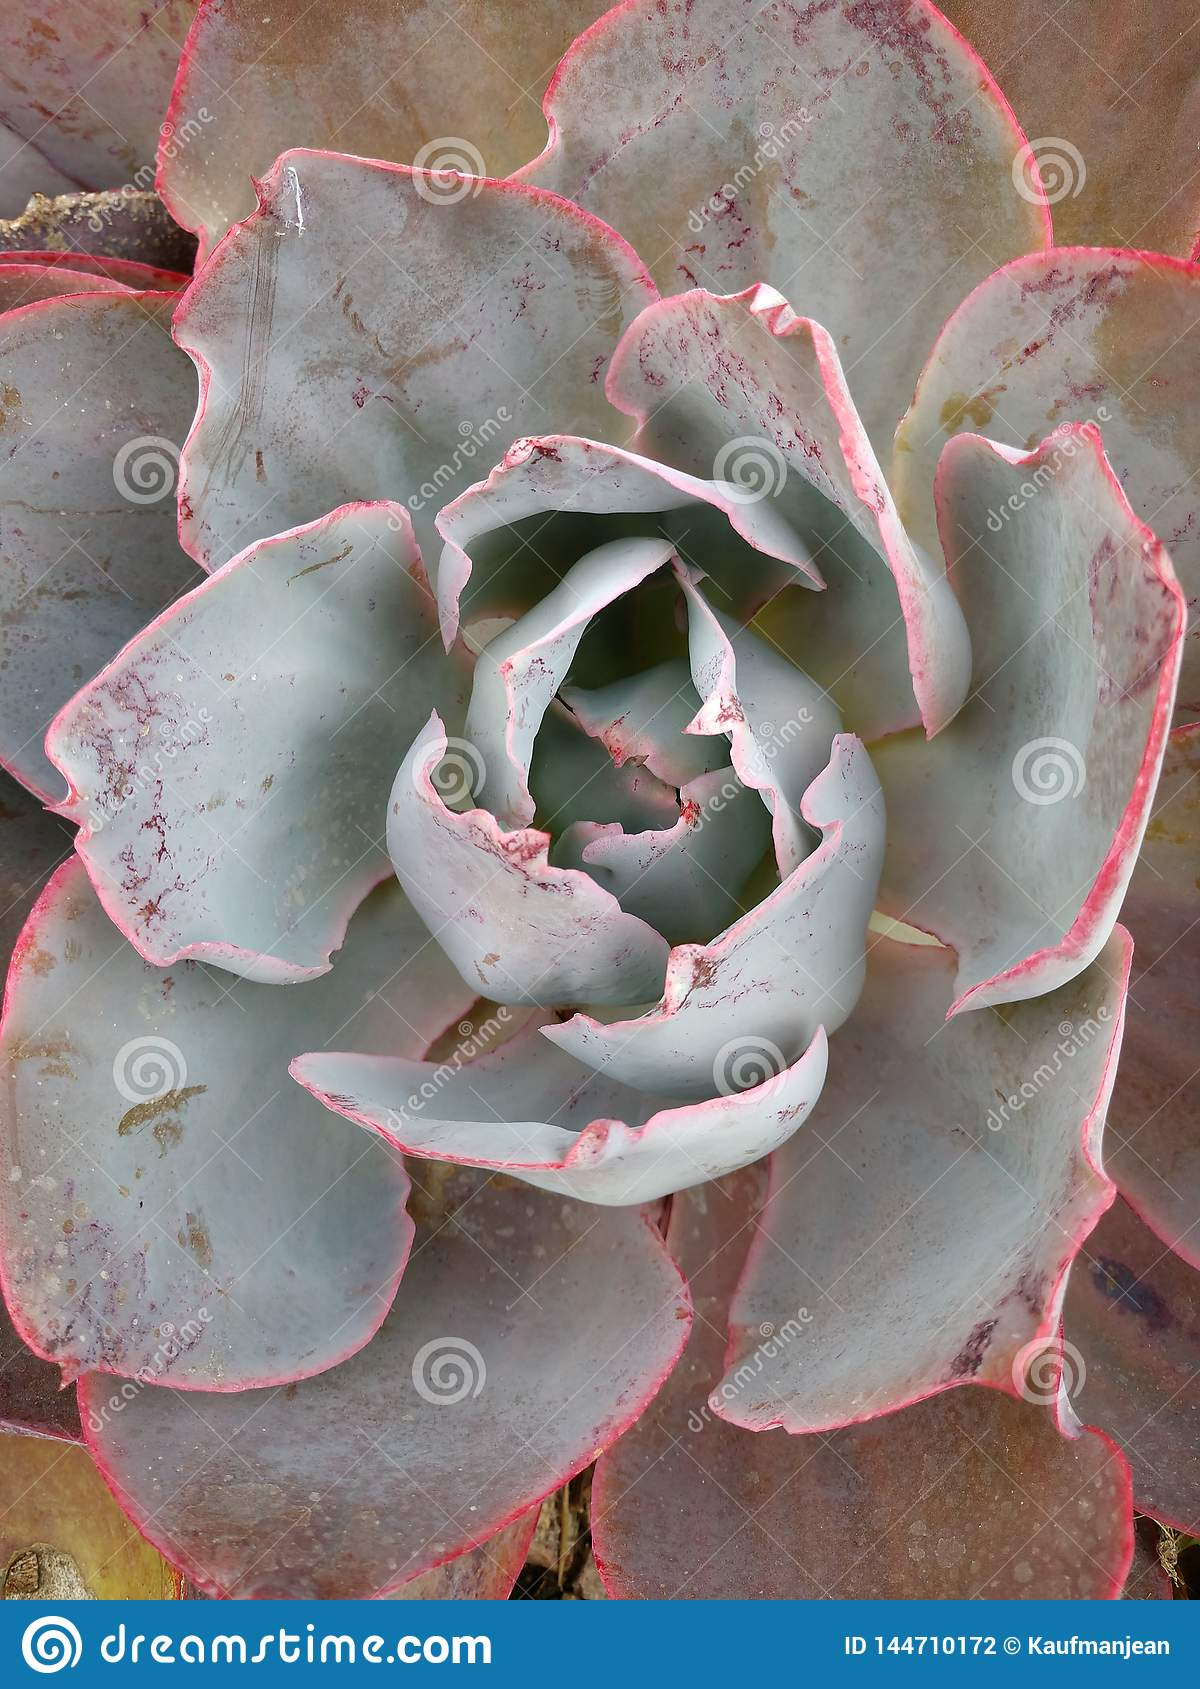 Echeveria cactus Big red light green succulent waxy leaves close up